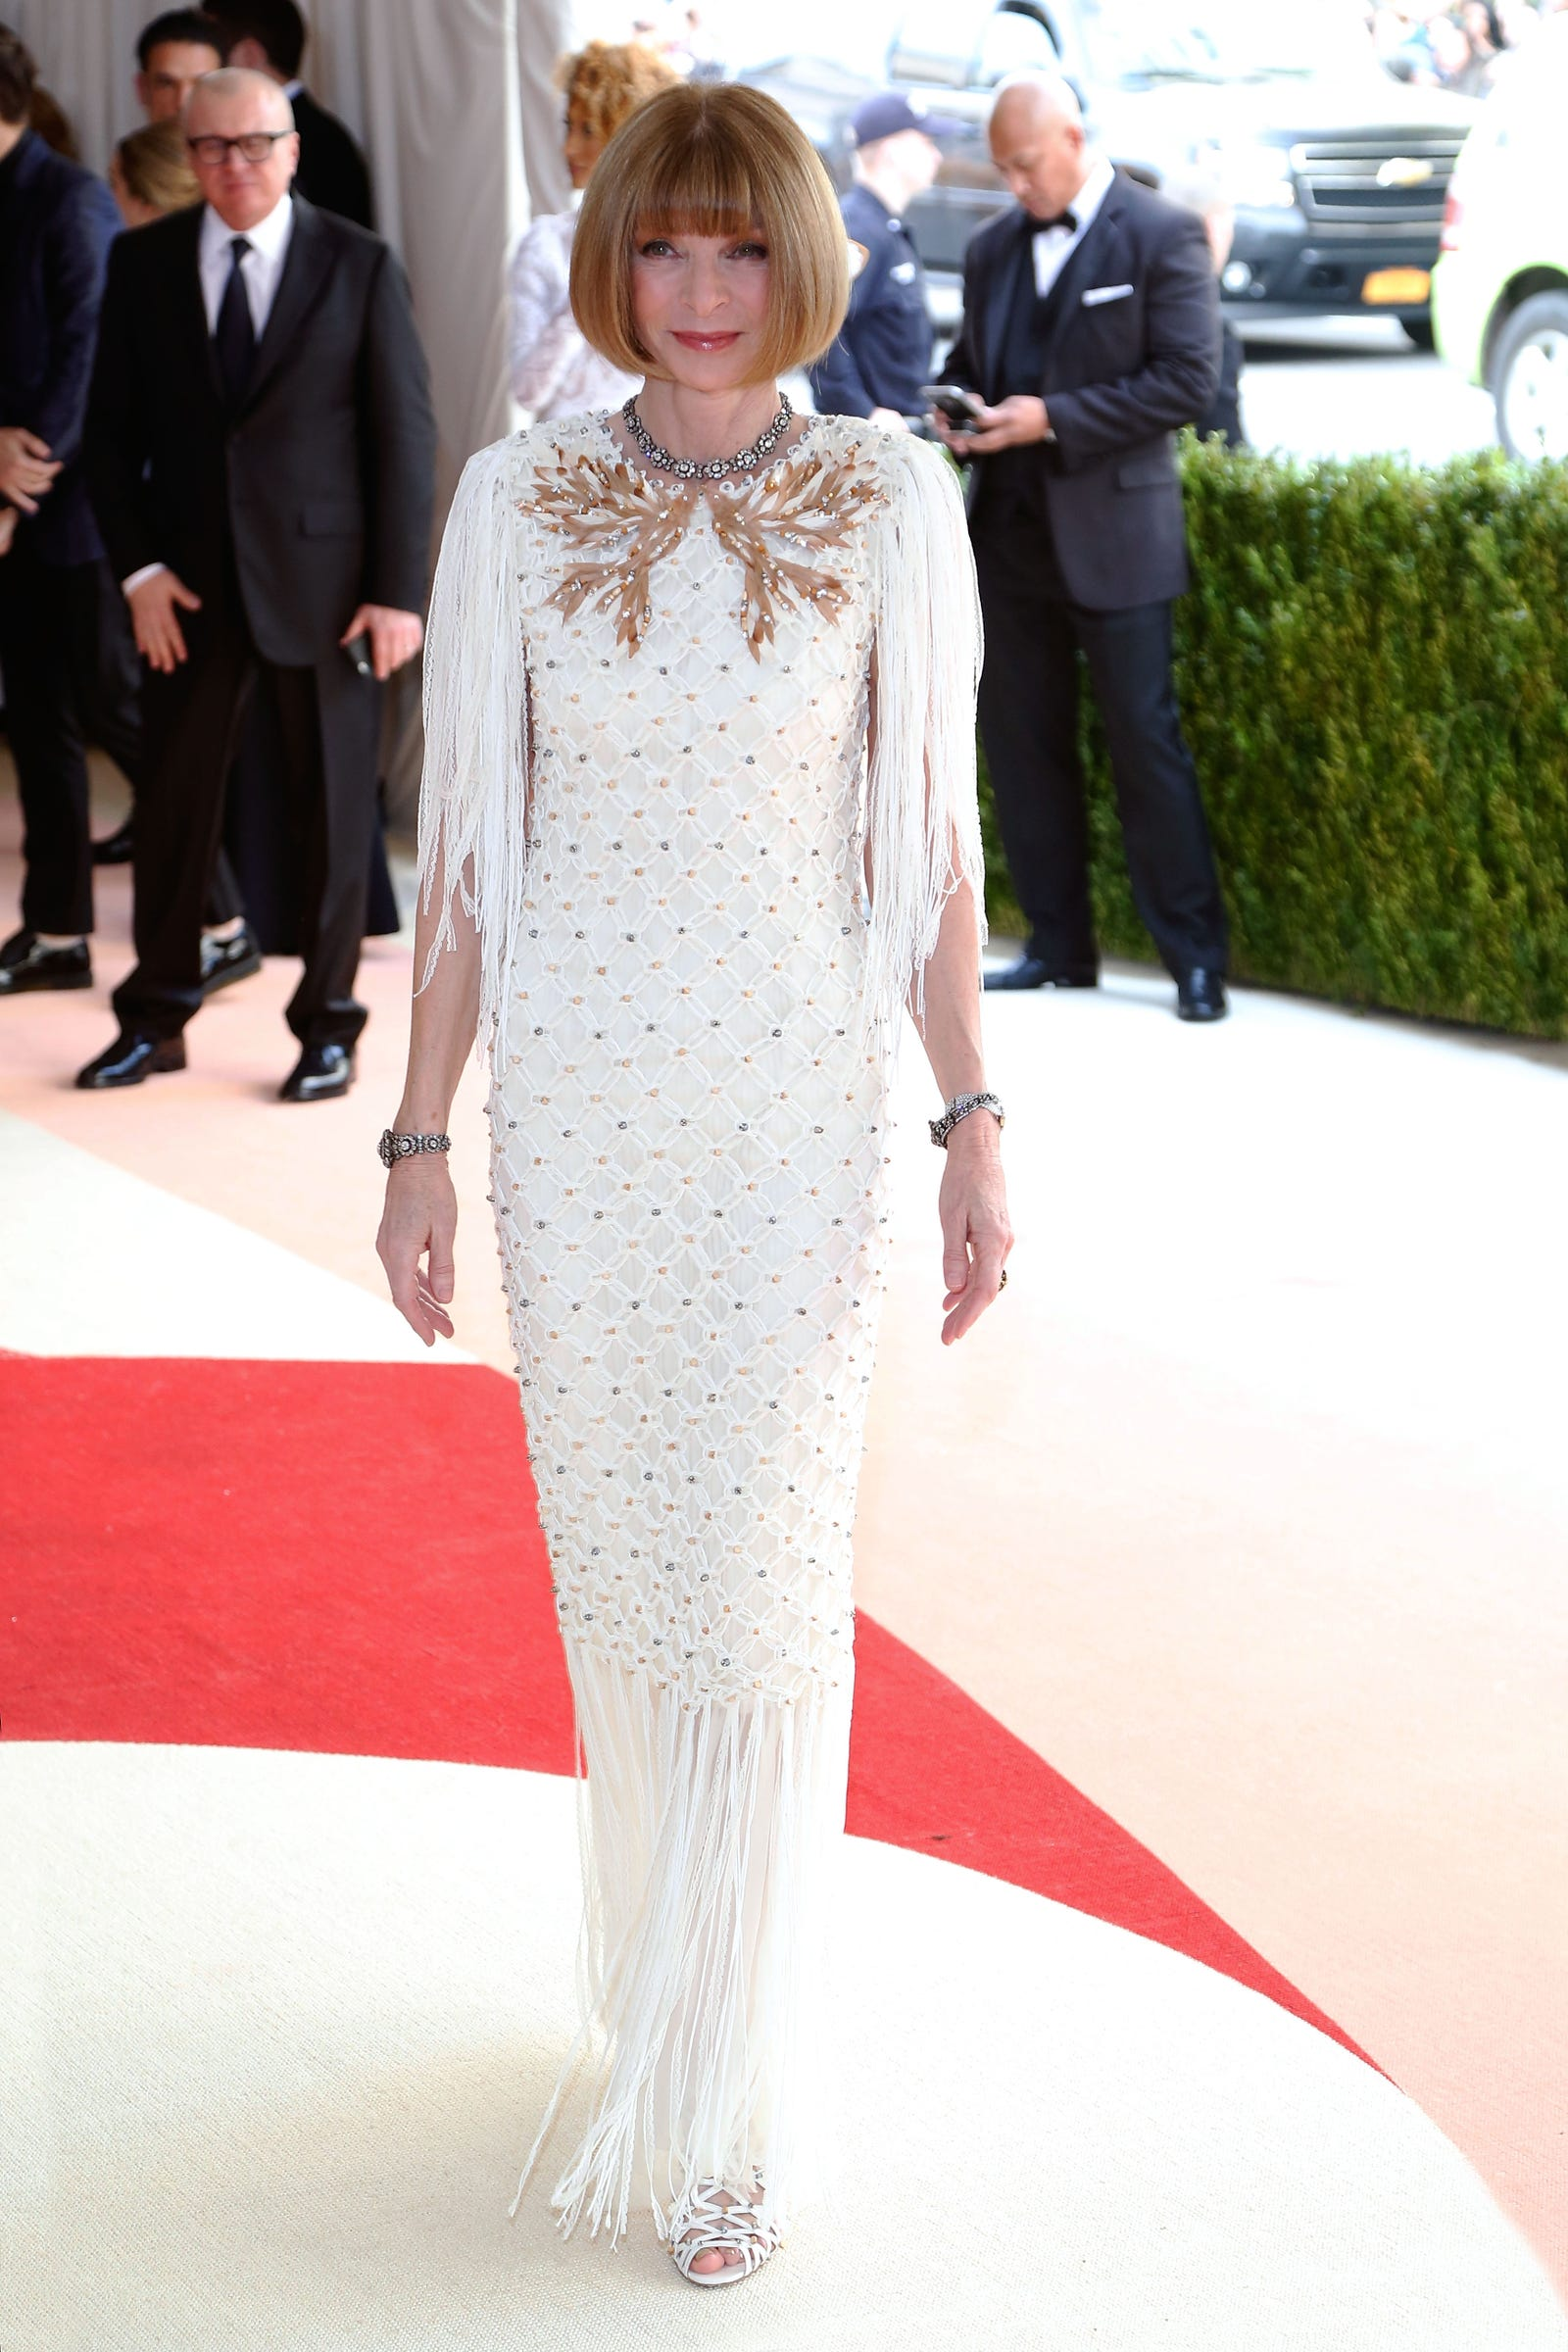 """Anna Wintour in Chanel at the Met Gala 2016, """"Manus x Machina: Fashion in an Age of Technology"""""""